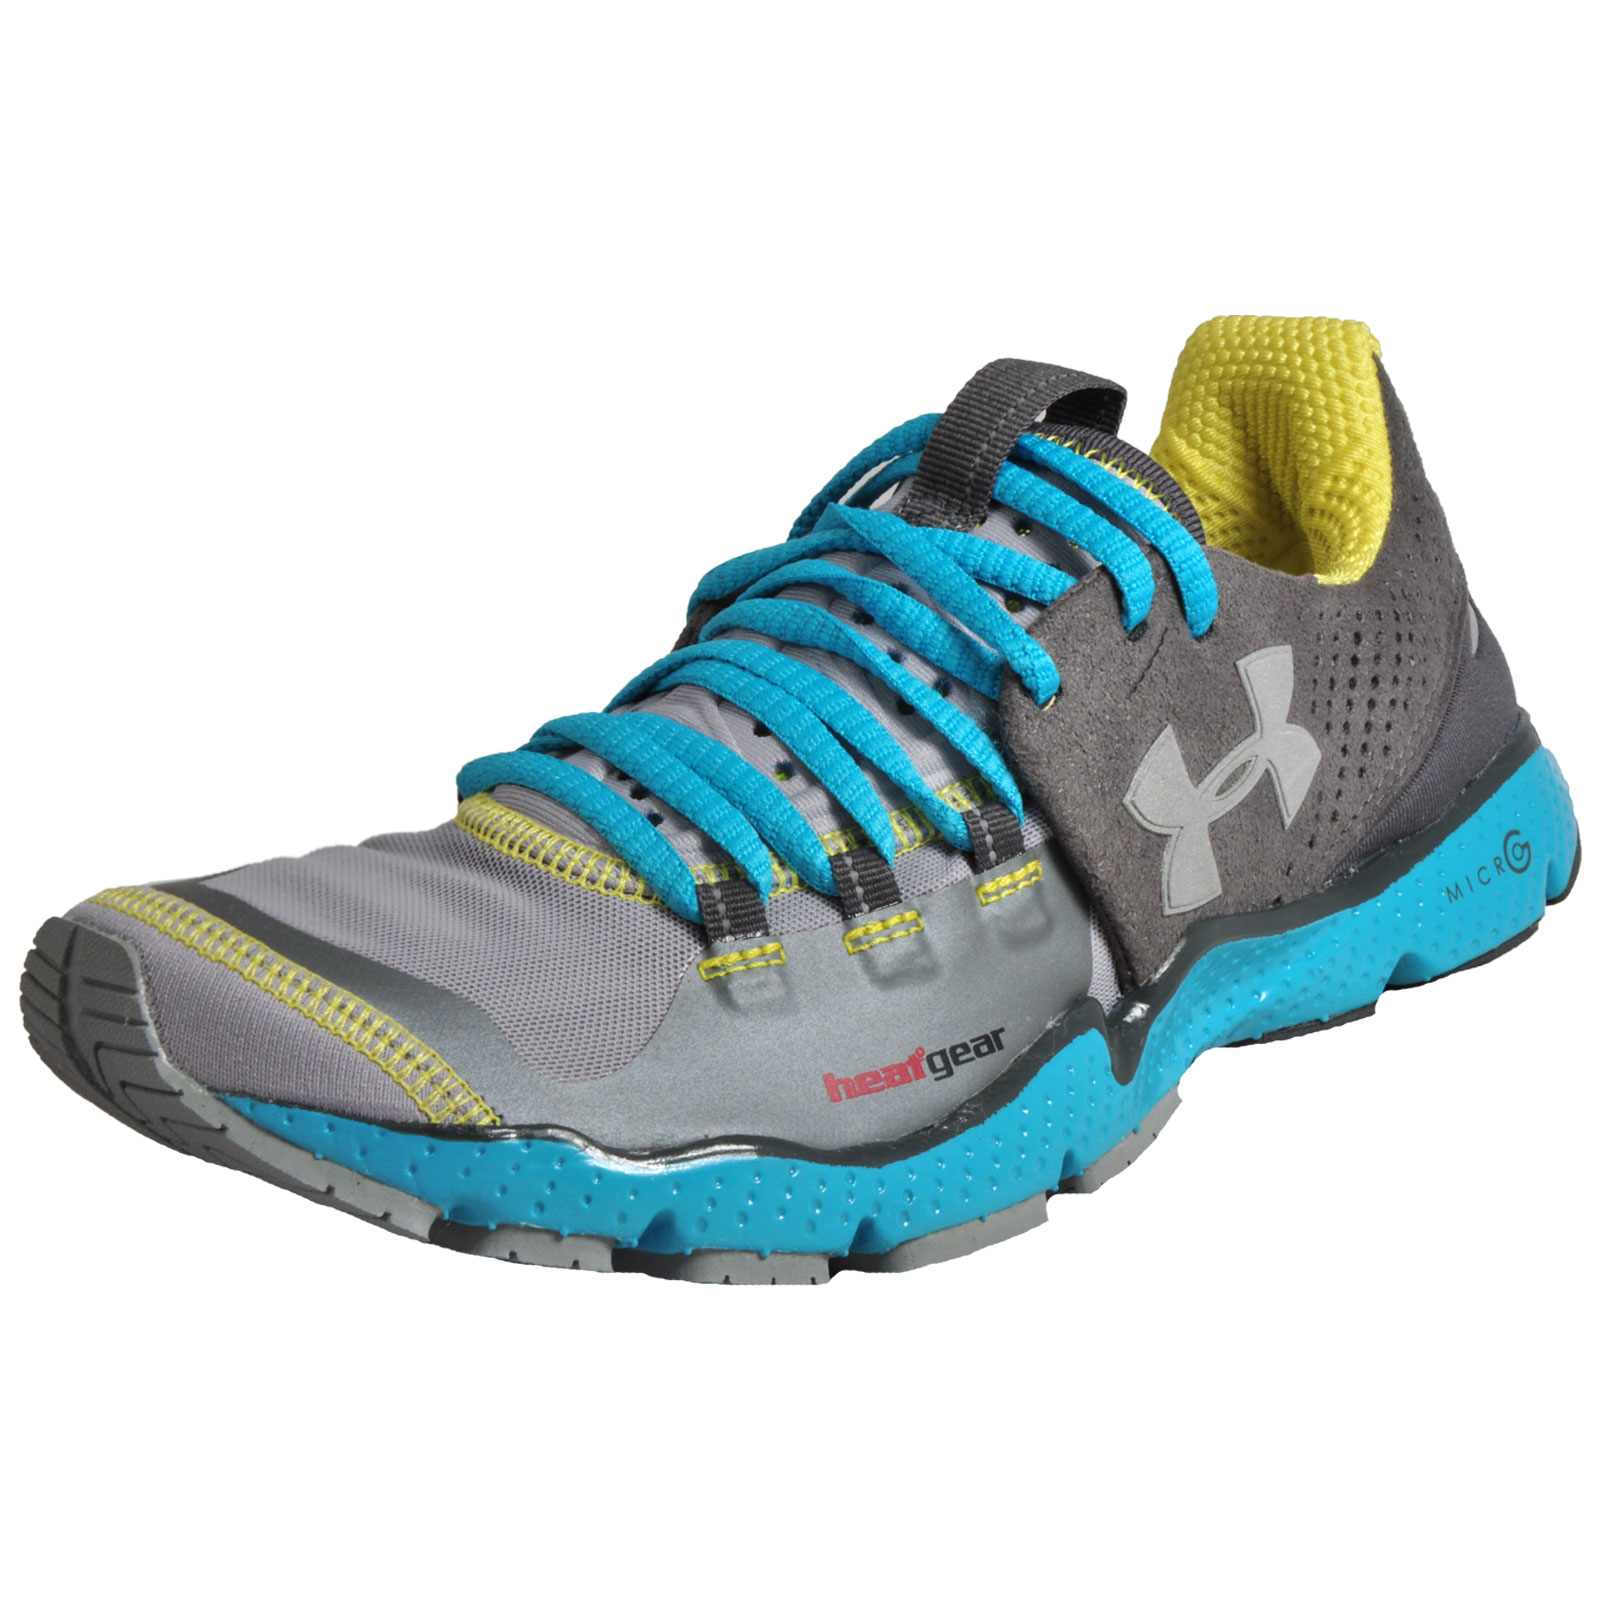 best website 884ce 34bd1 Details about Under Armour Charge RC Womens Premium Running Shoes Fitness  Gym Trainers Grey